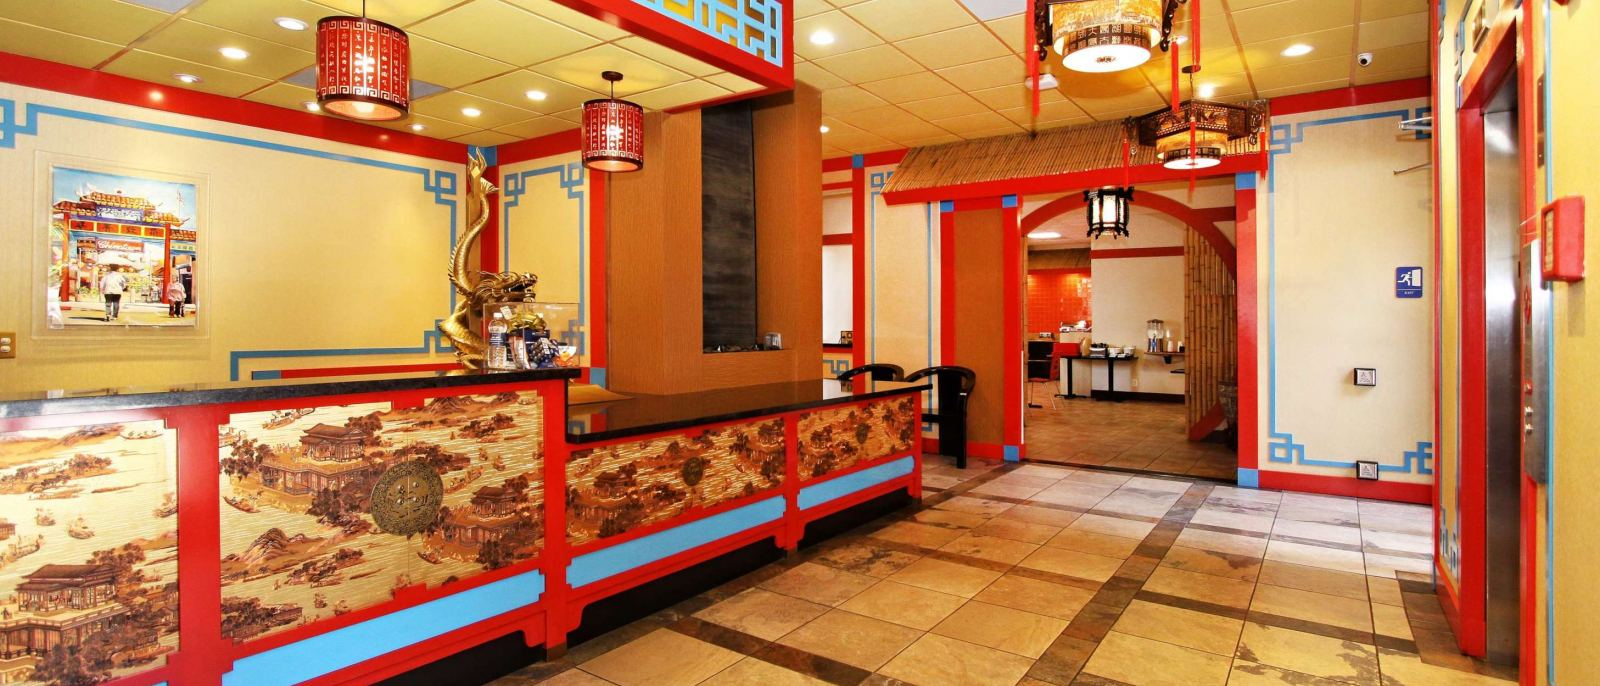 The Guide To Hotels Near Little Tokyo Discover Los Angeles